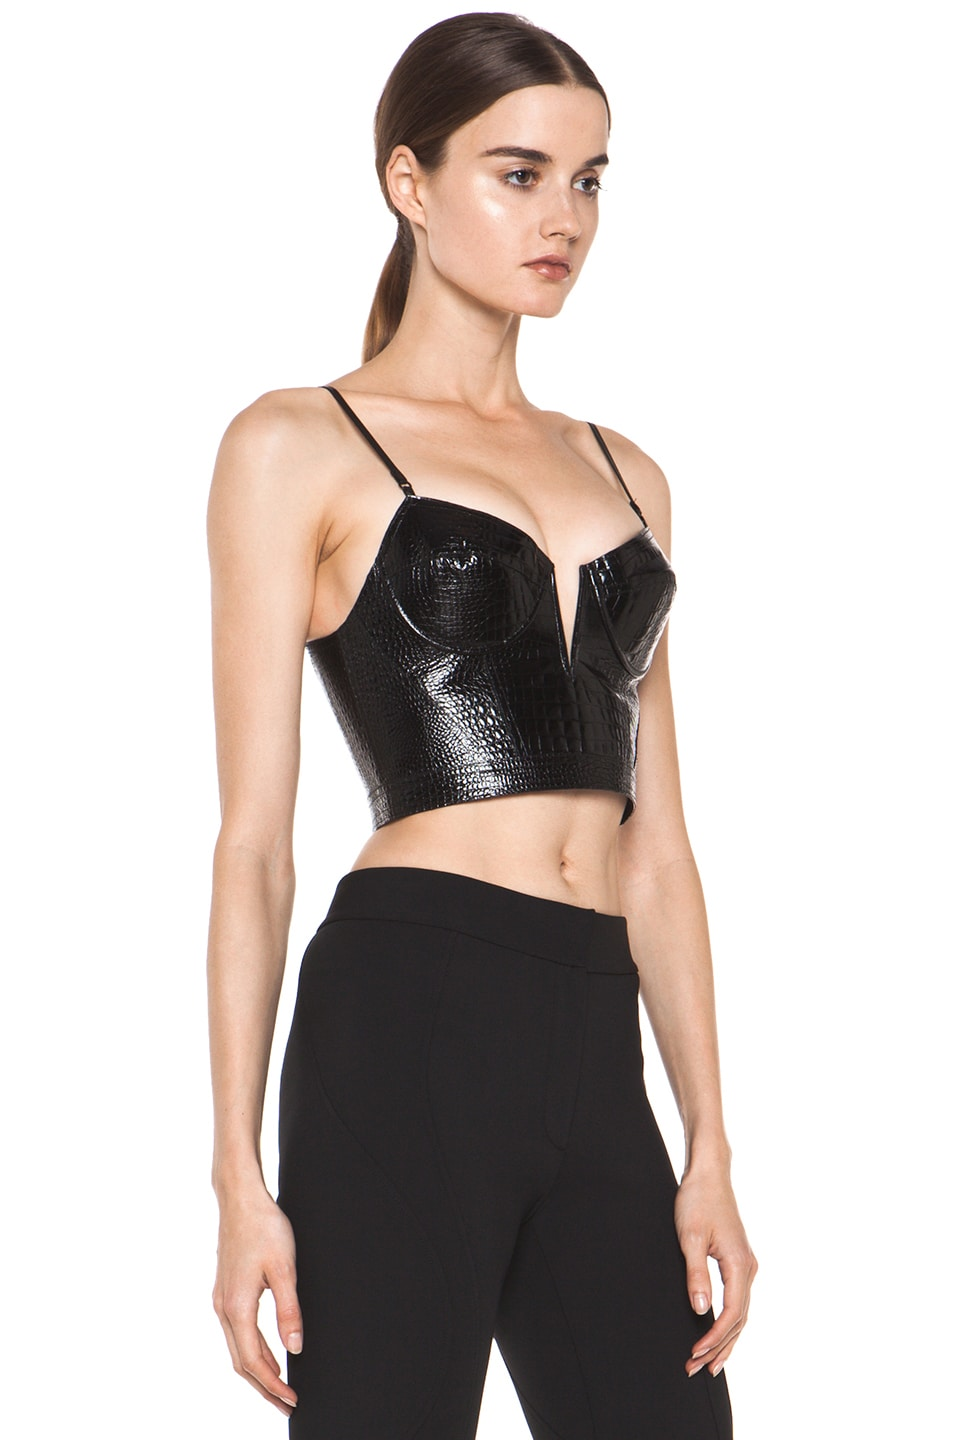 2a21c2aa2 Image 3 of Alexander Wang Bustier Contouring Seam Top in Black